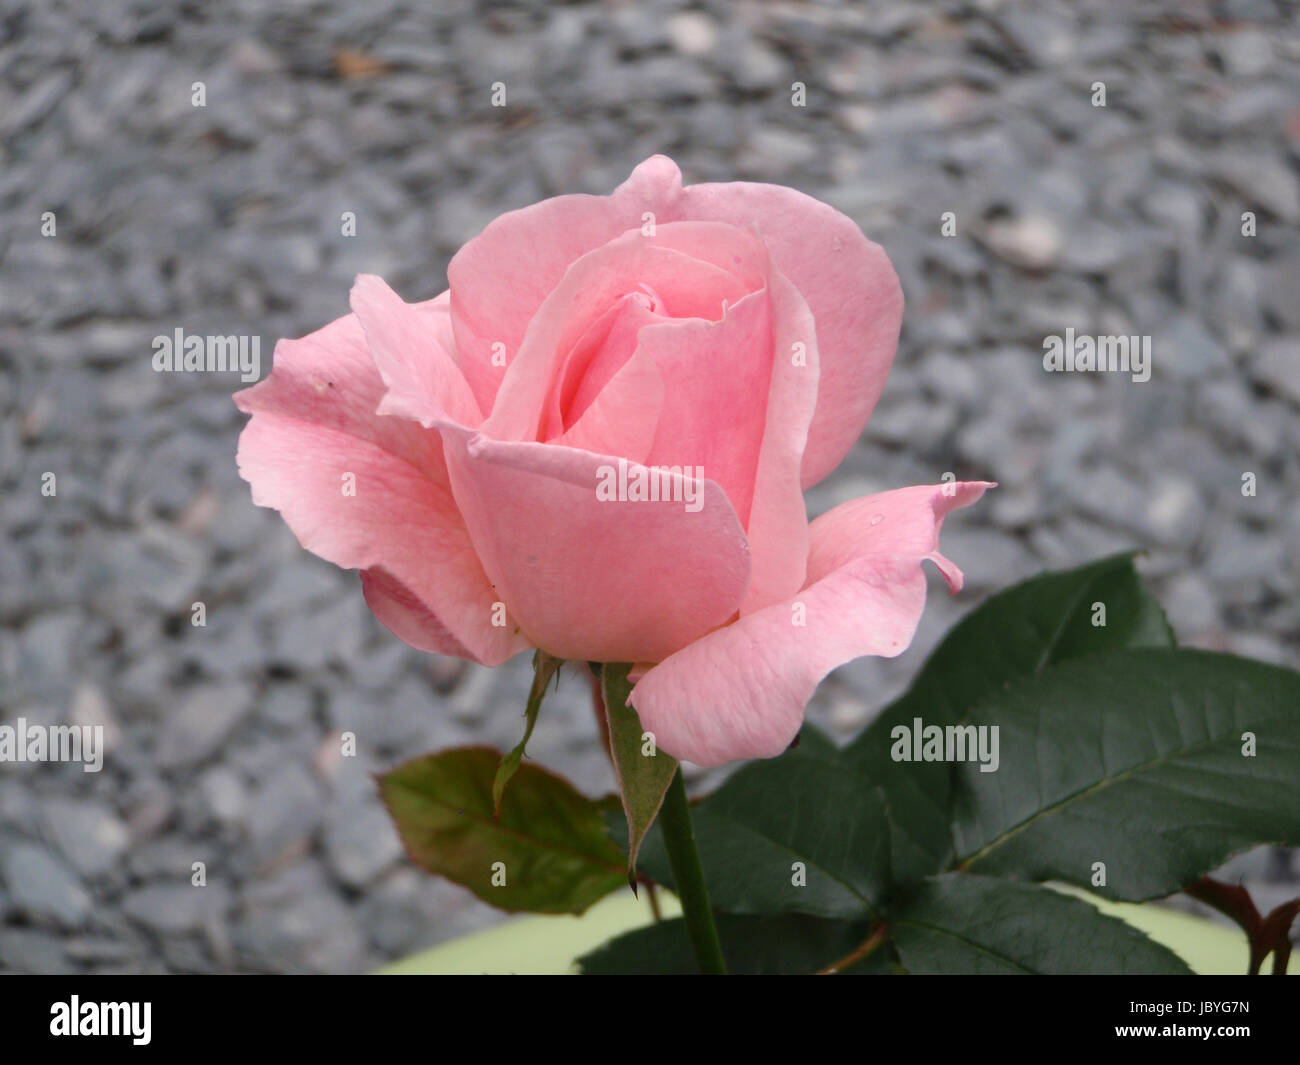 Pale pink rose with grey slate background - Stock Image